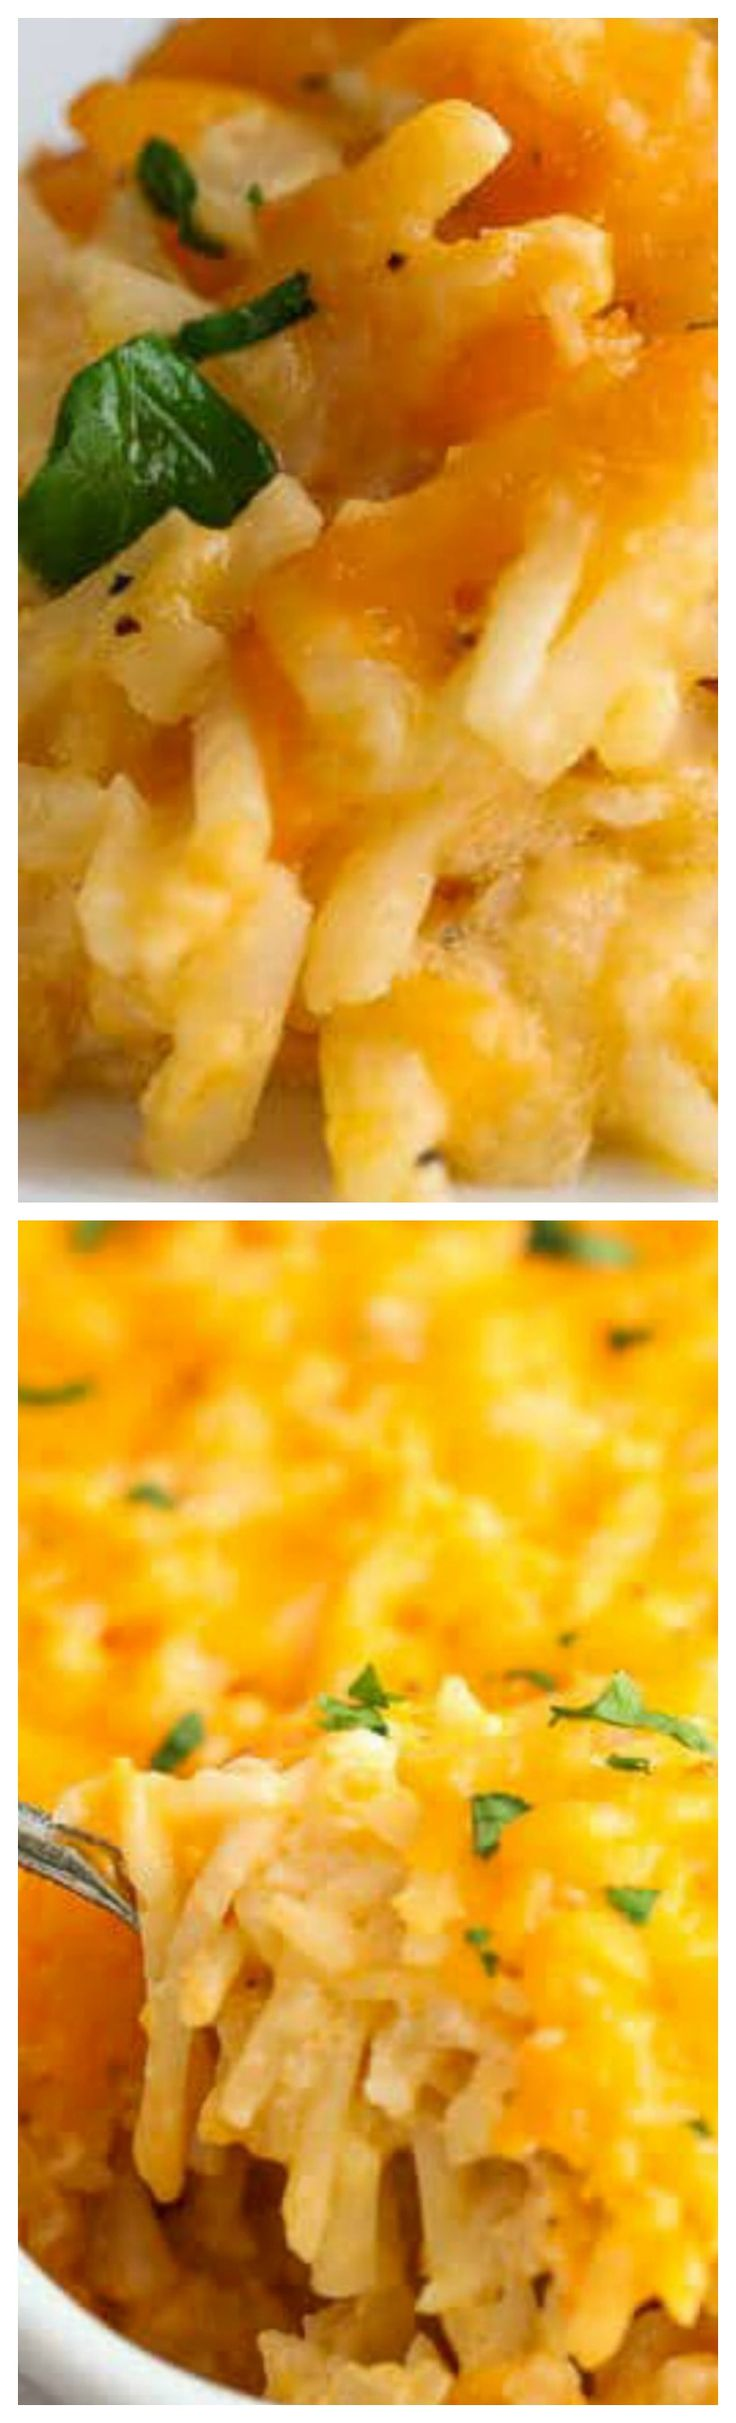 Copy Cat Cracker Barrel Hashbrown Casserole ~ The closest to the real recipe you can find... This cheesy breakfast casserole is perfect to feed a crowd!